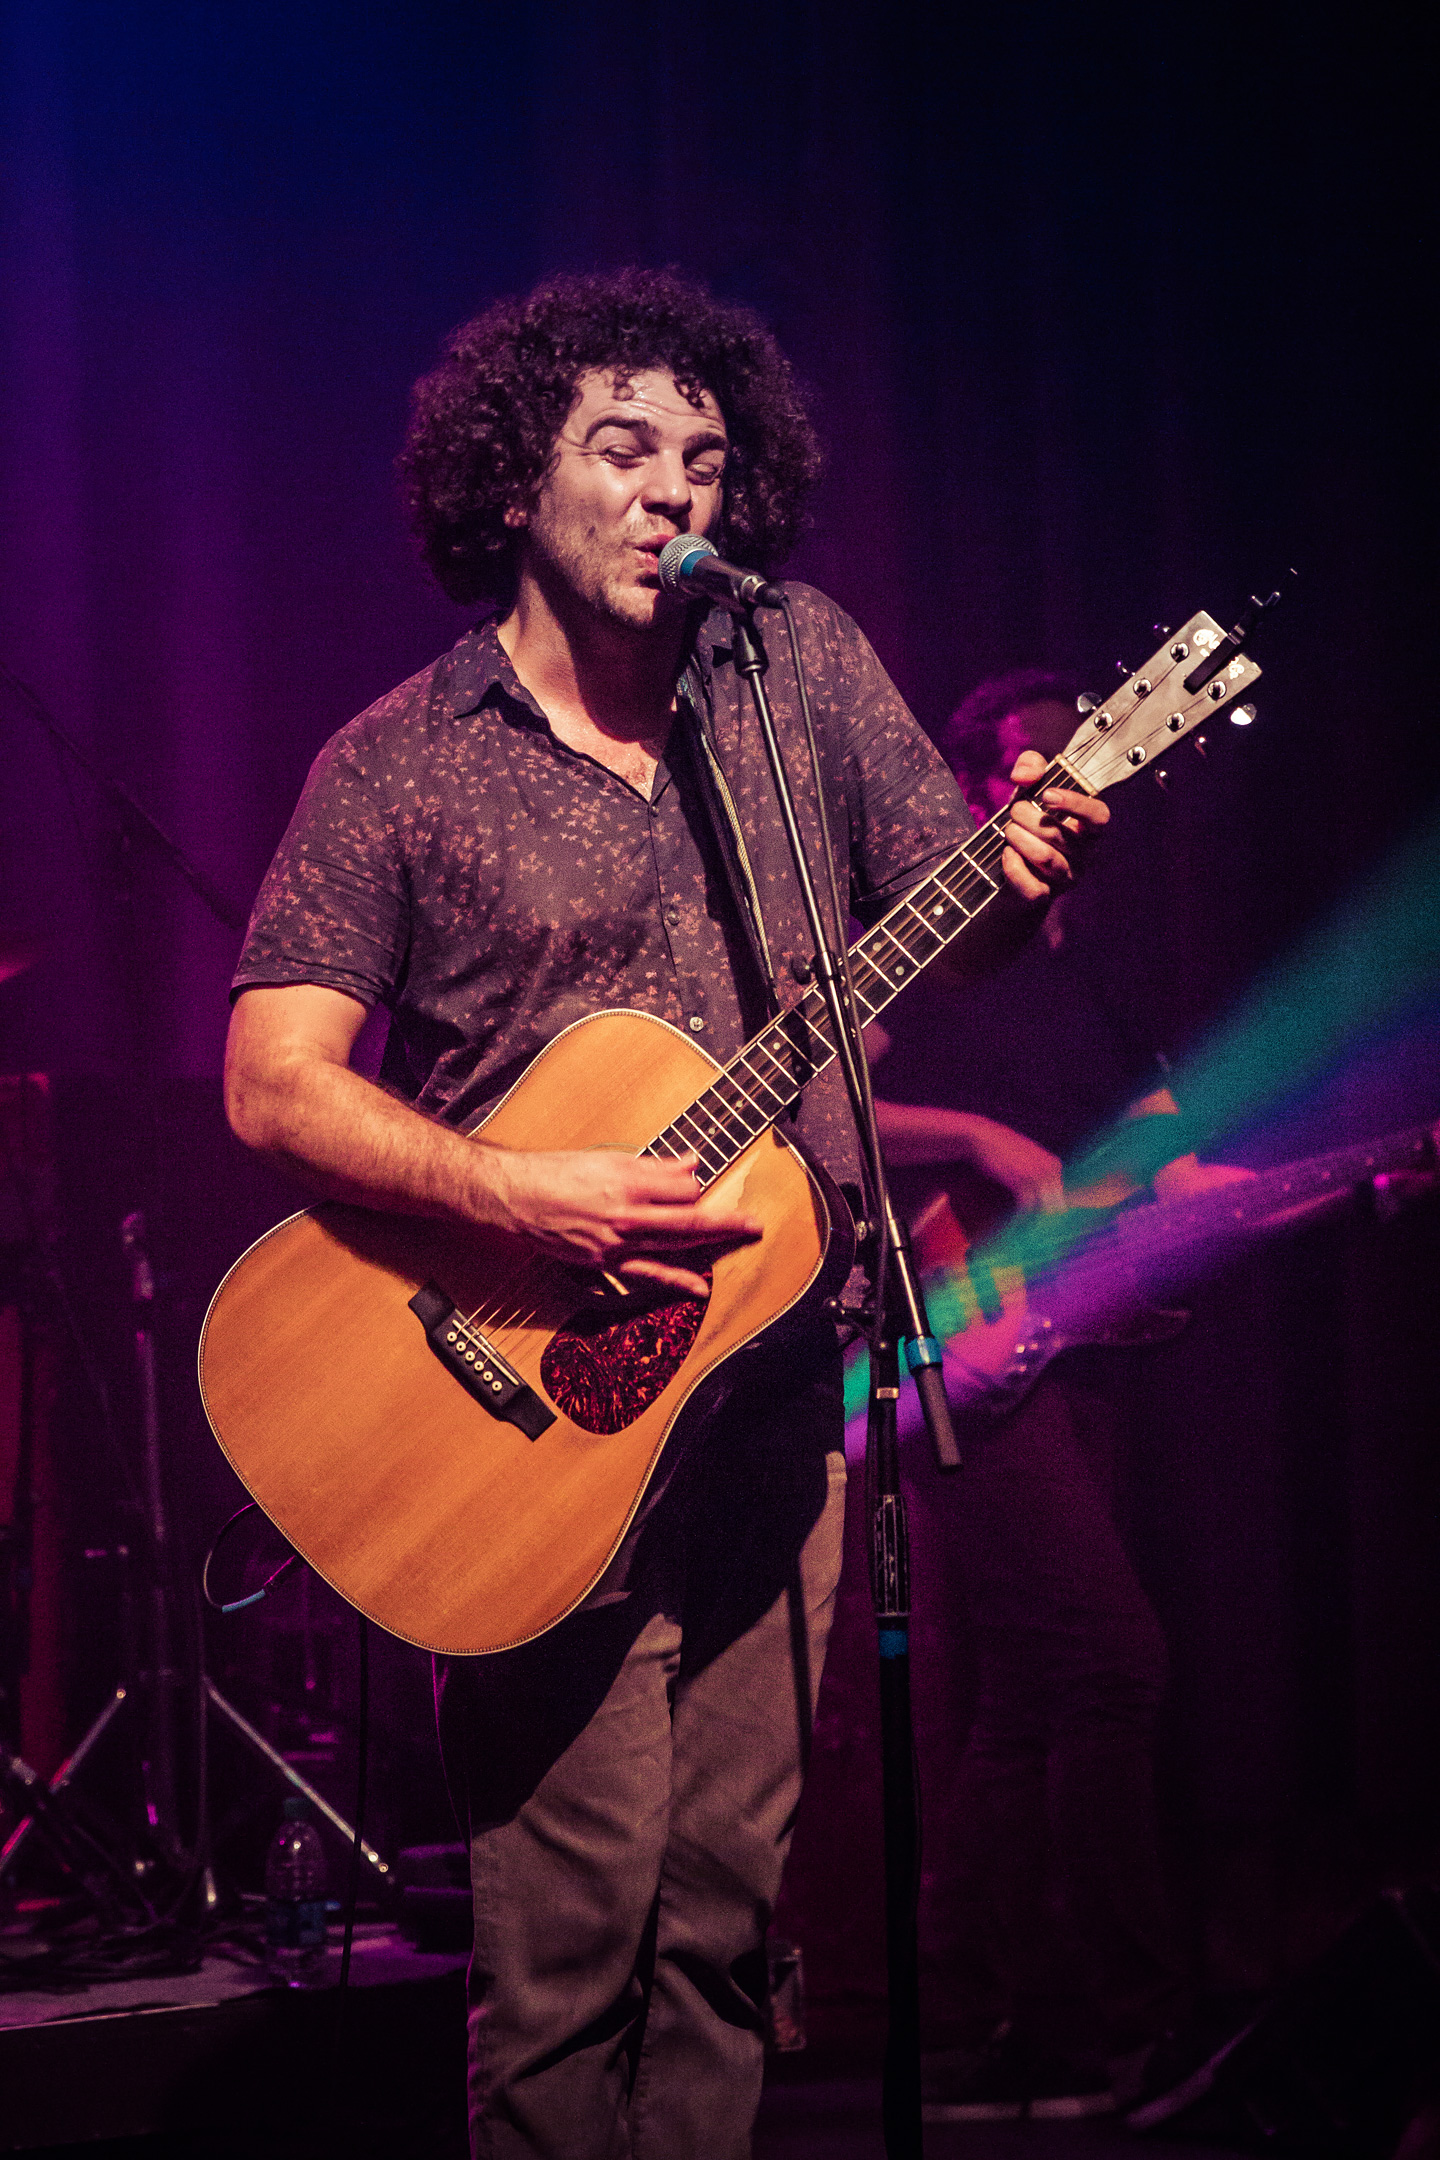 Rob Drabkin - Concert Photos - Annual Birthday Show at Bluebird Theater Denver